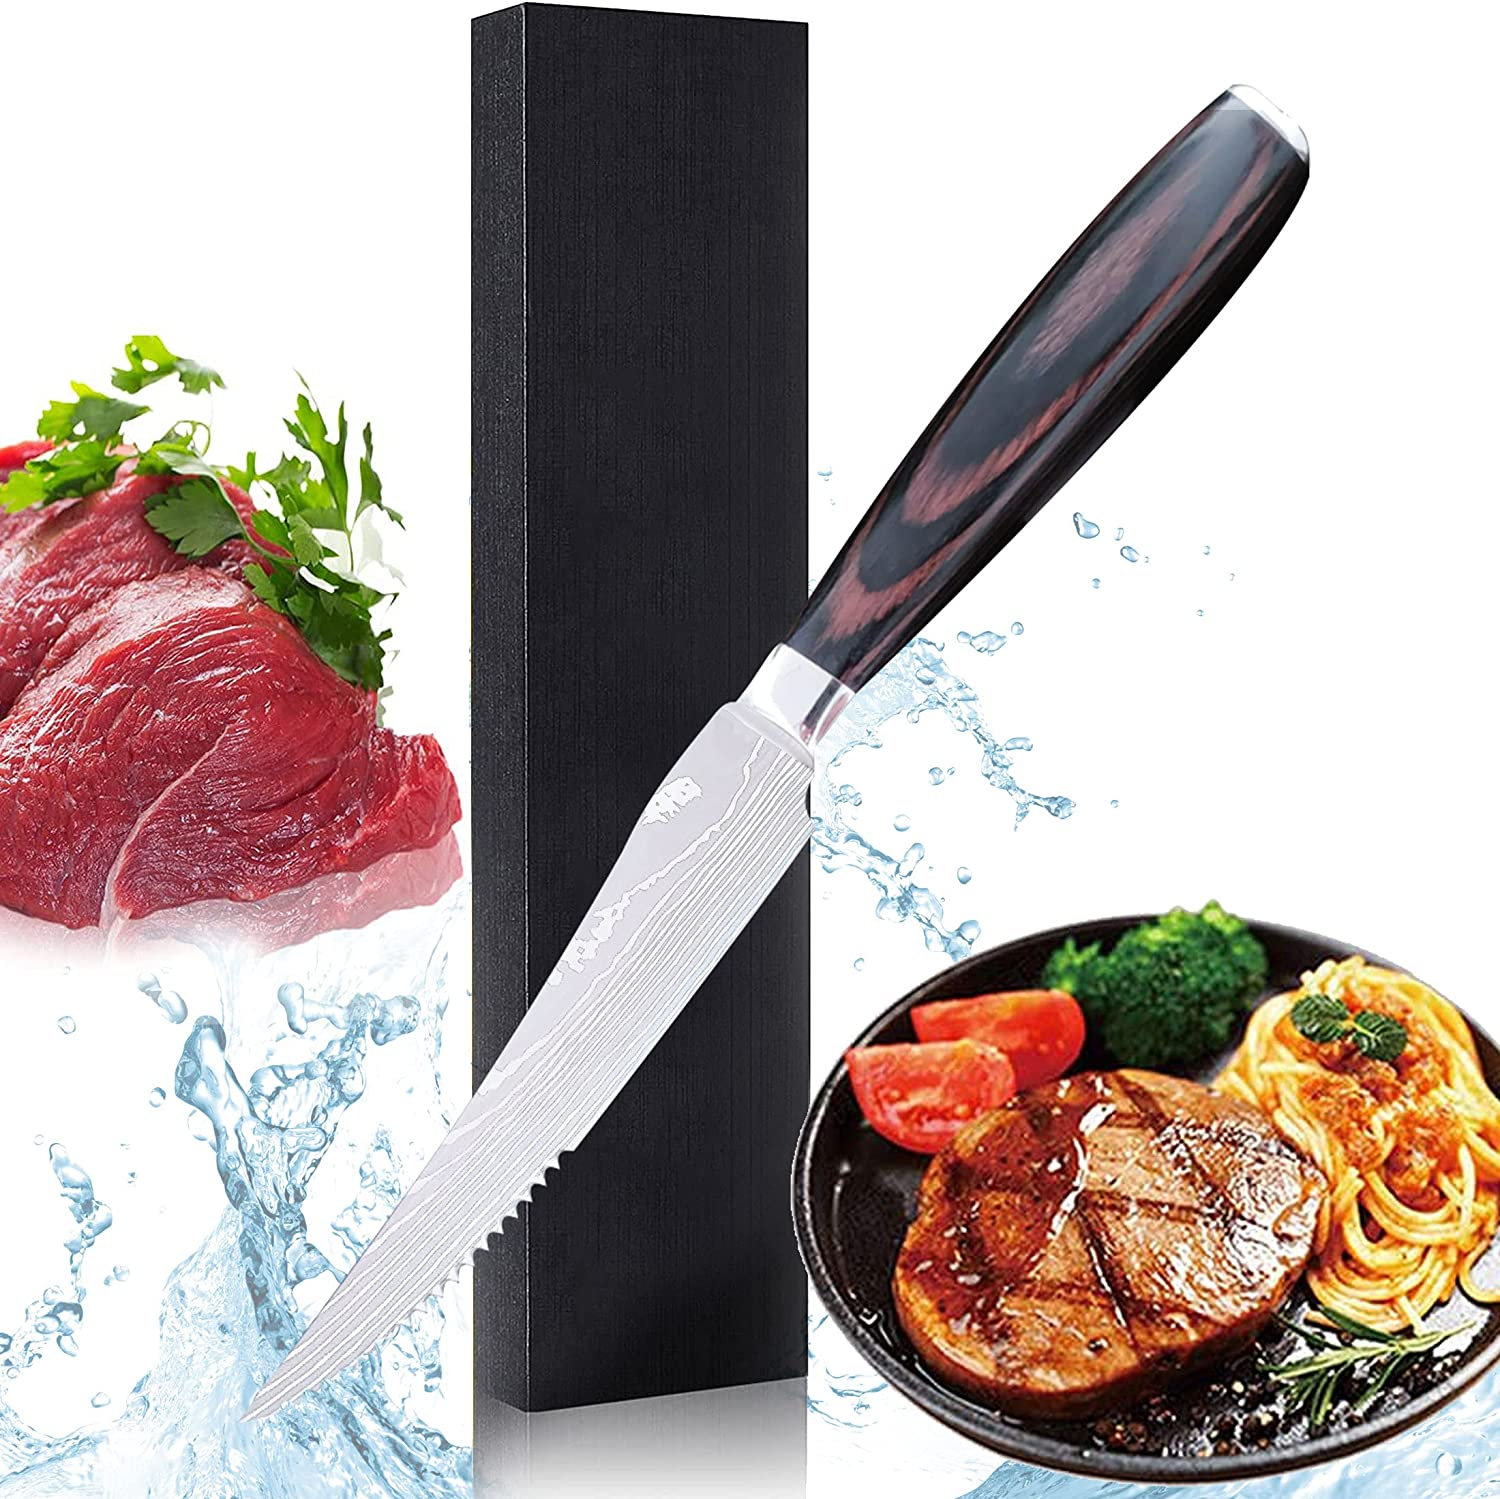 Las Vegas Mall Steak Knife 5 inch Professional Stainless Carbon Tucson Mall Steel High Stea